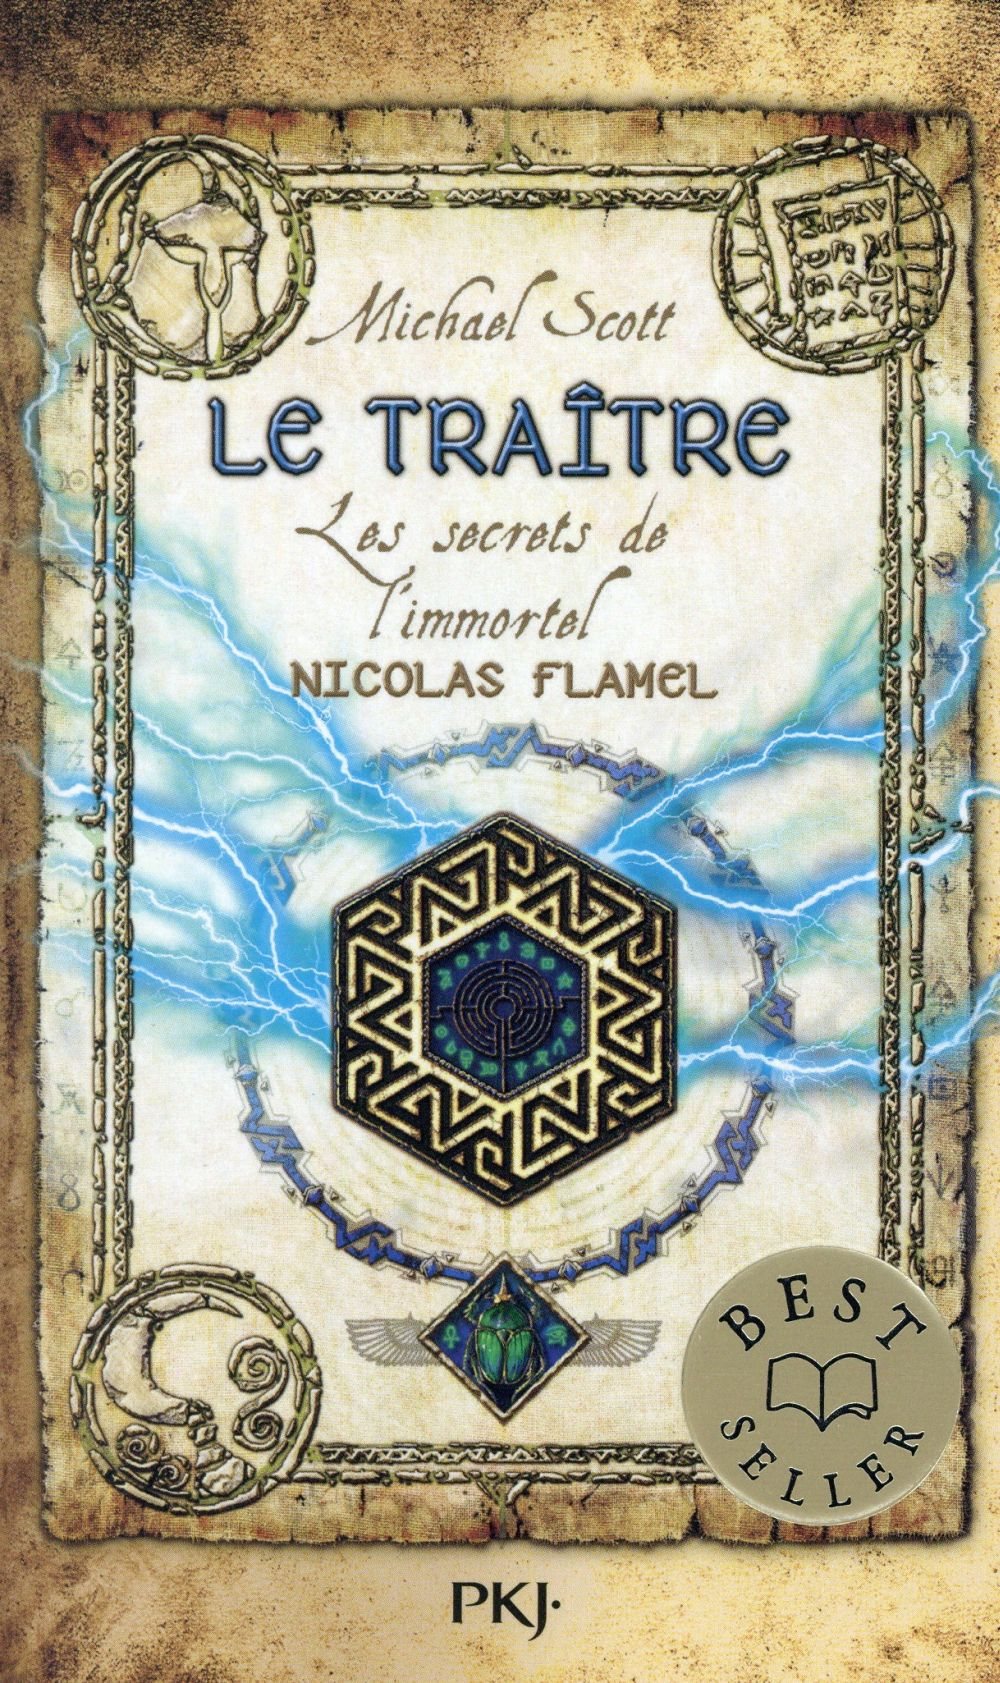 LES SECRETS DE L'IMMORTEL NICOLAS FLAMEL - TOME 5 LE TRAITRE Scott Michael Pocket jeunesse